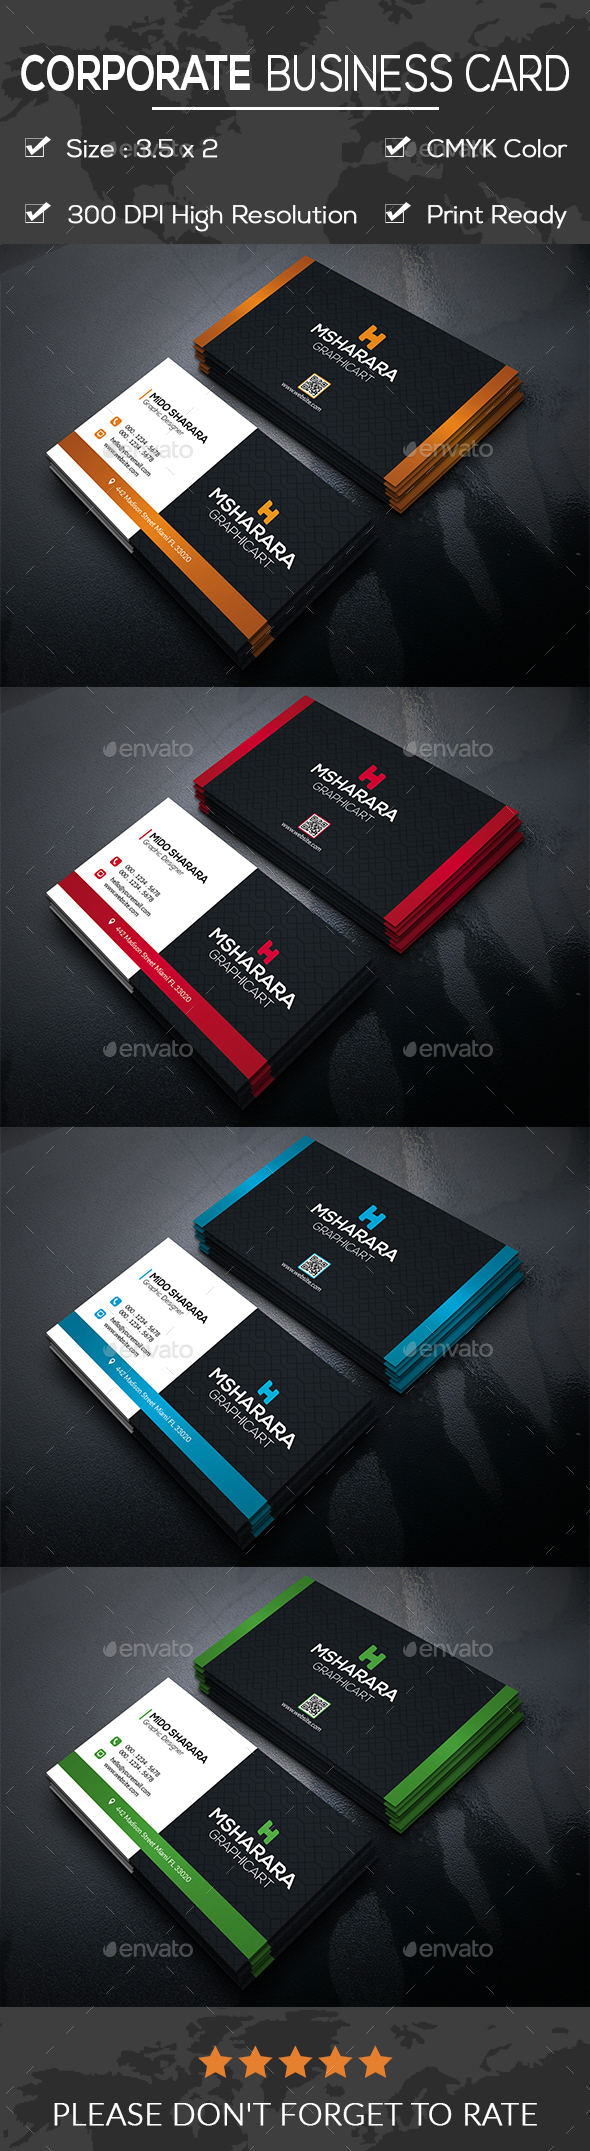 Corporate Business Card - Business Cards Print Templates